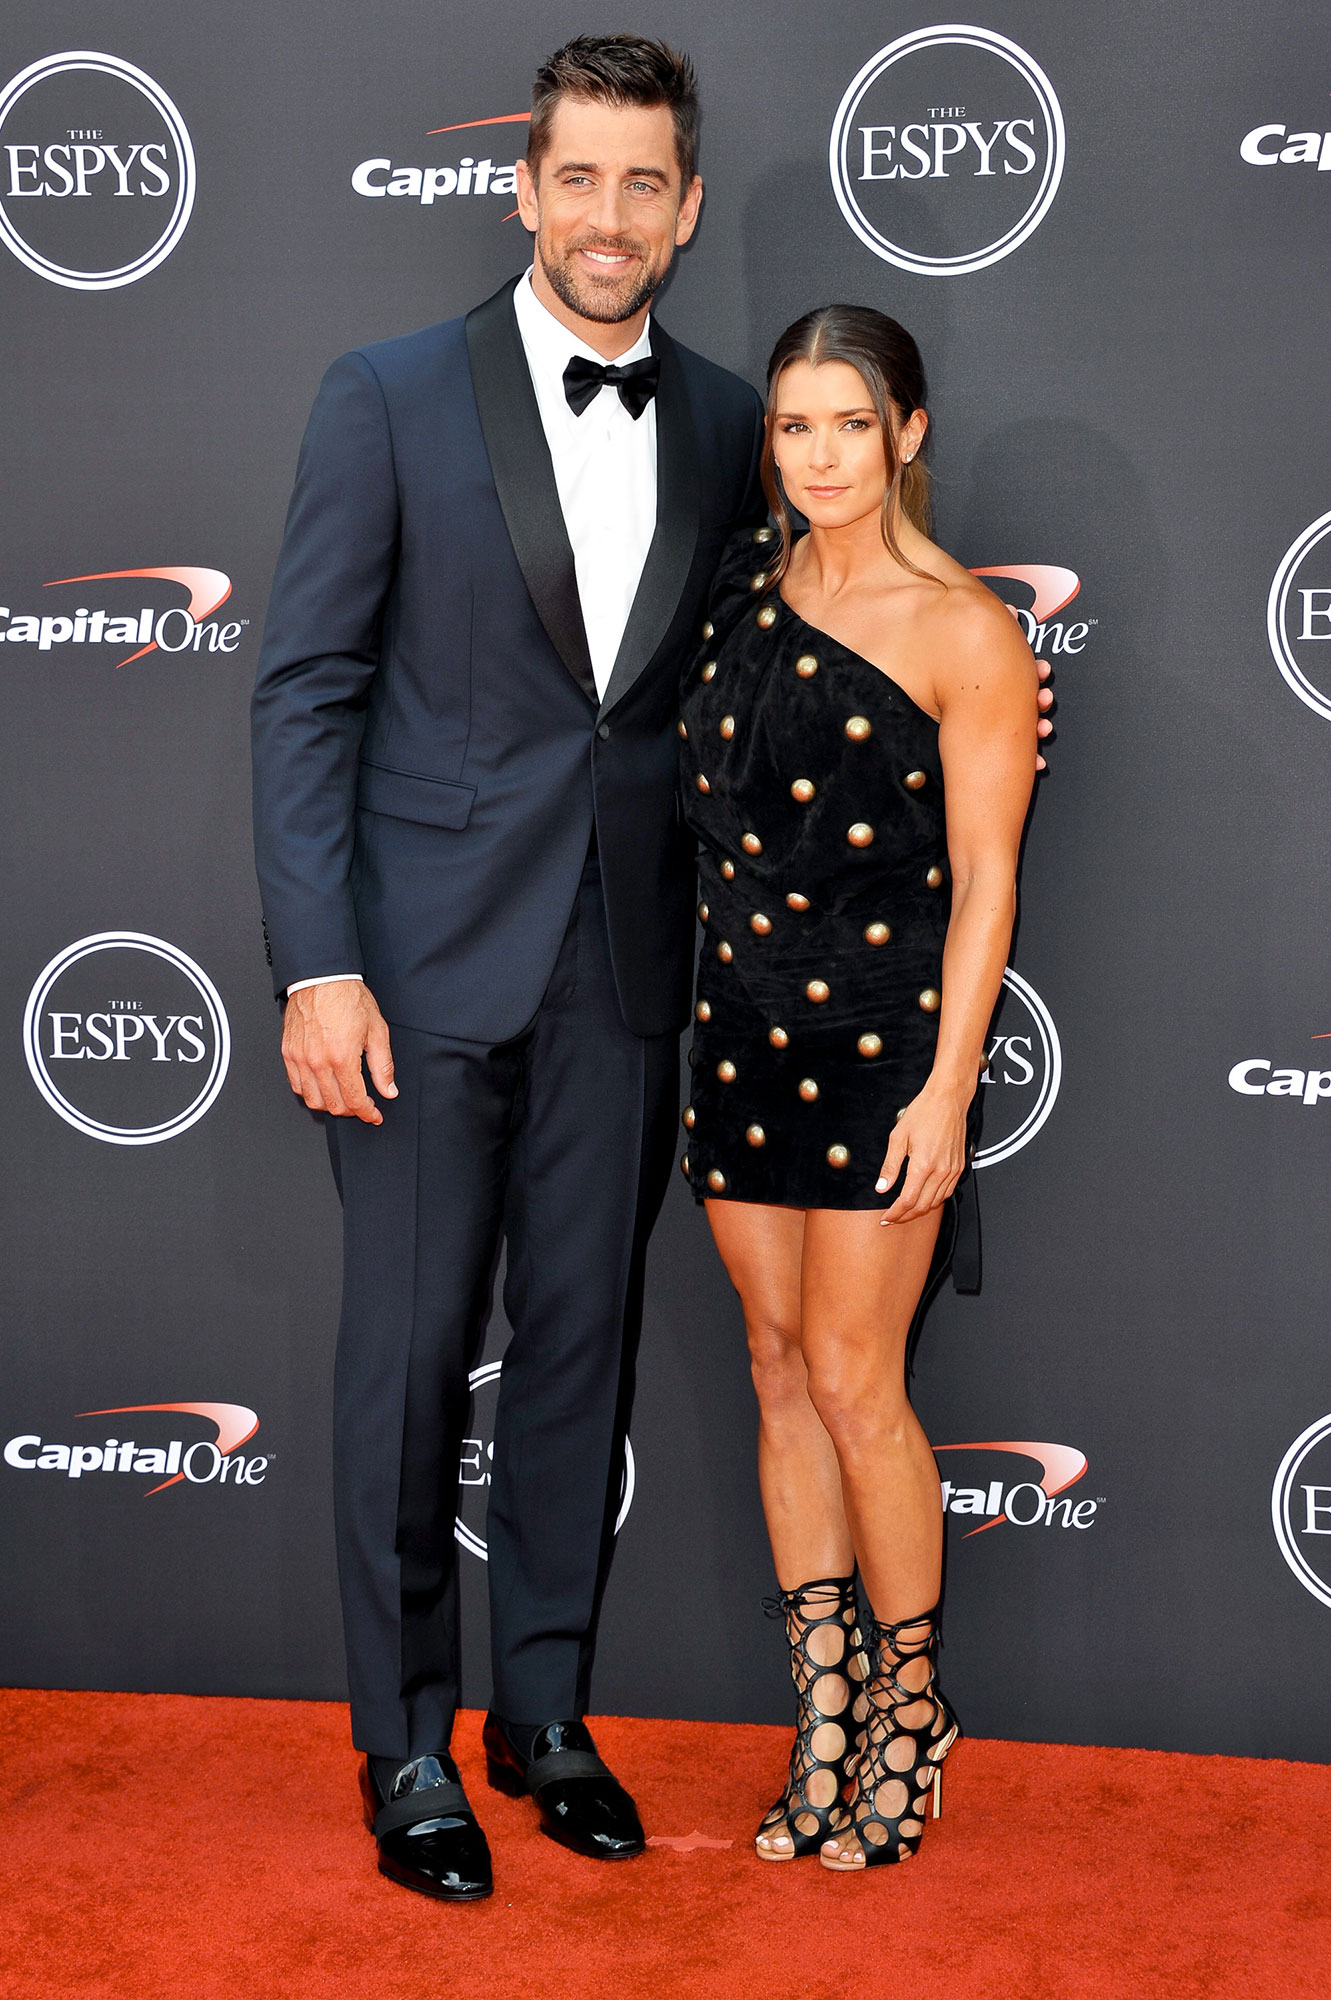 Couples Who Made Their Red Carpet Debuts at an Awards Show - The retired racer hosted the 2018 ESPY Awards, where she was accompanied by her boyfriend on the red carpet. The Green Bay Packers quarterback looked lovingly at his girlfriend while the pair posed for photos.